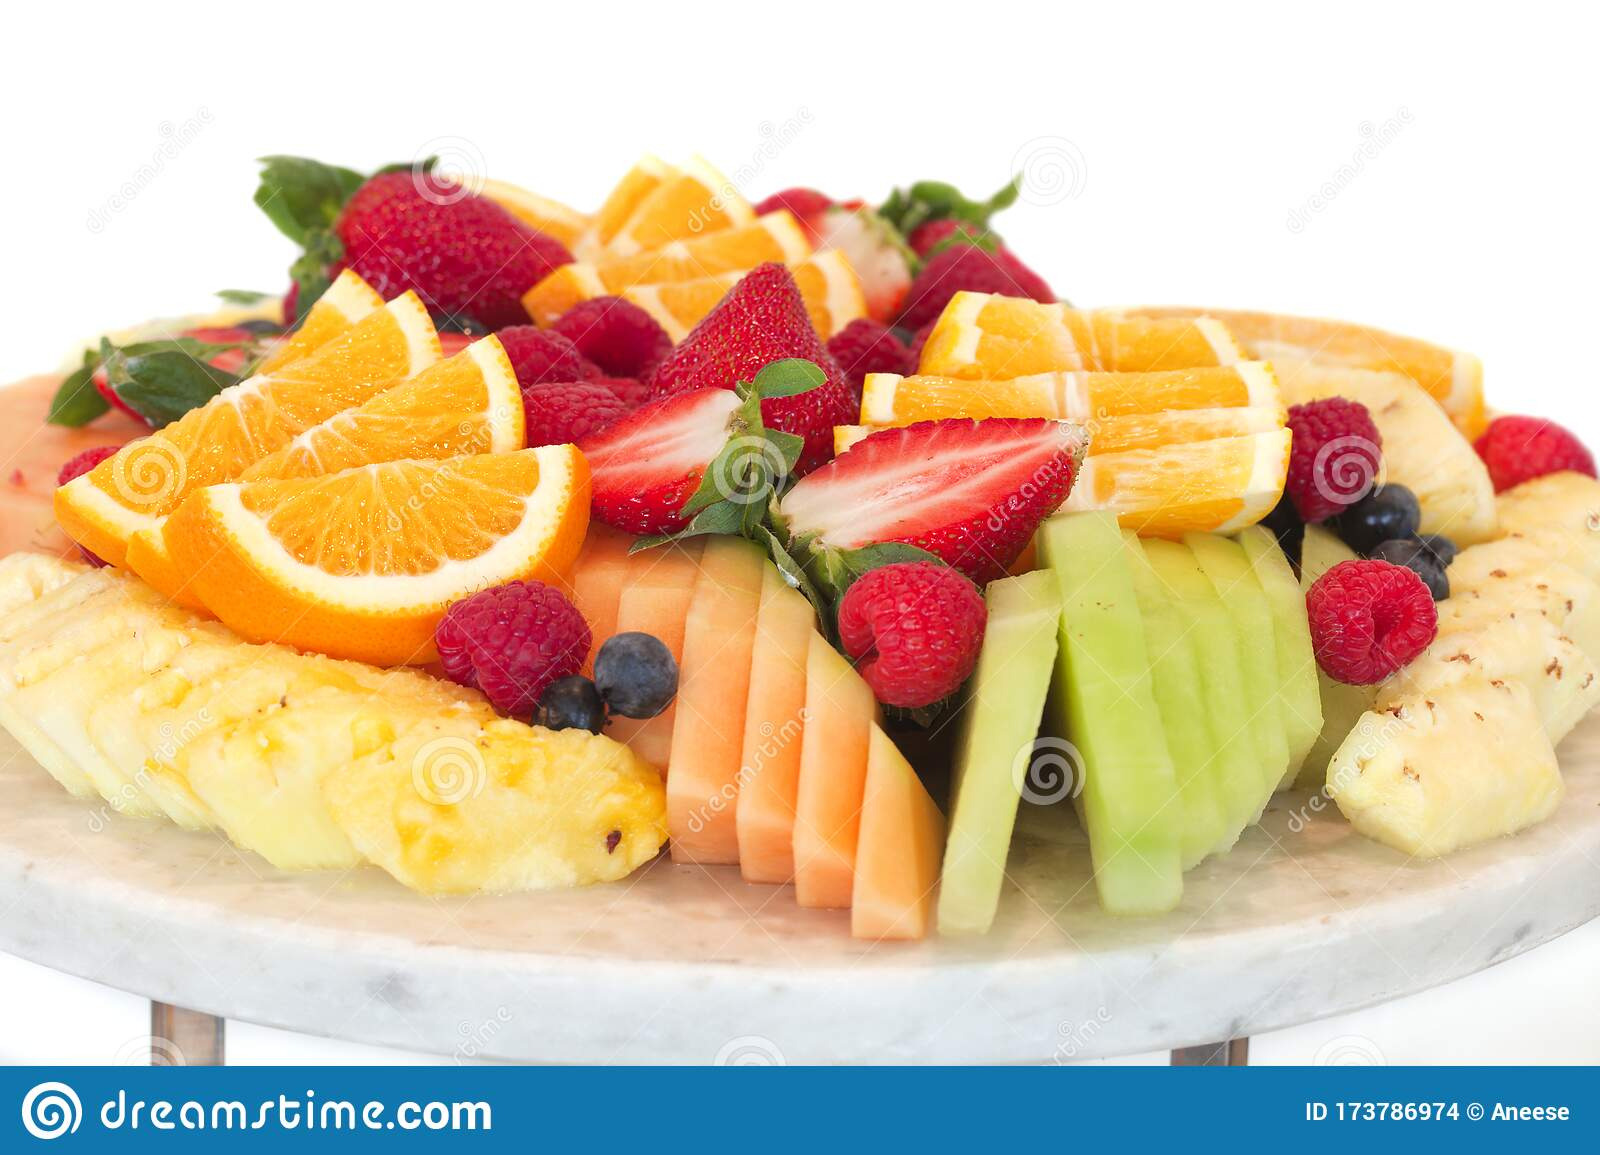 Healthy Platter Of Different Sliced Fruits Stock Photo Image Of Appetizers Healthy 173786974